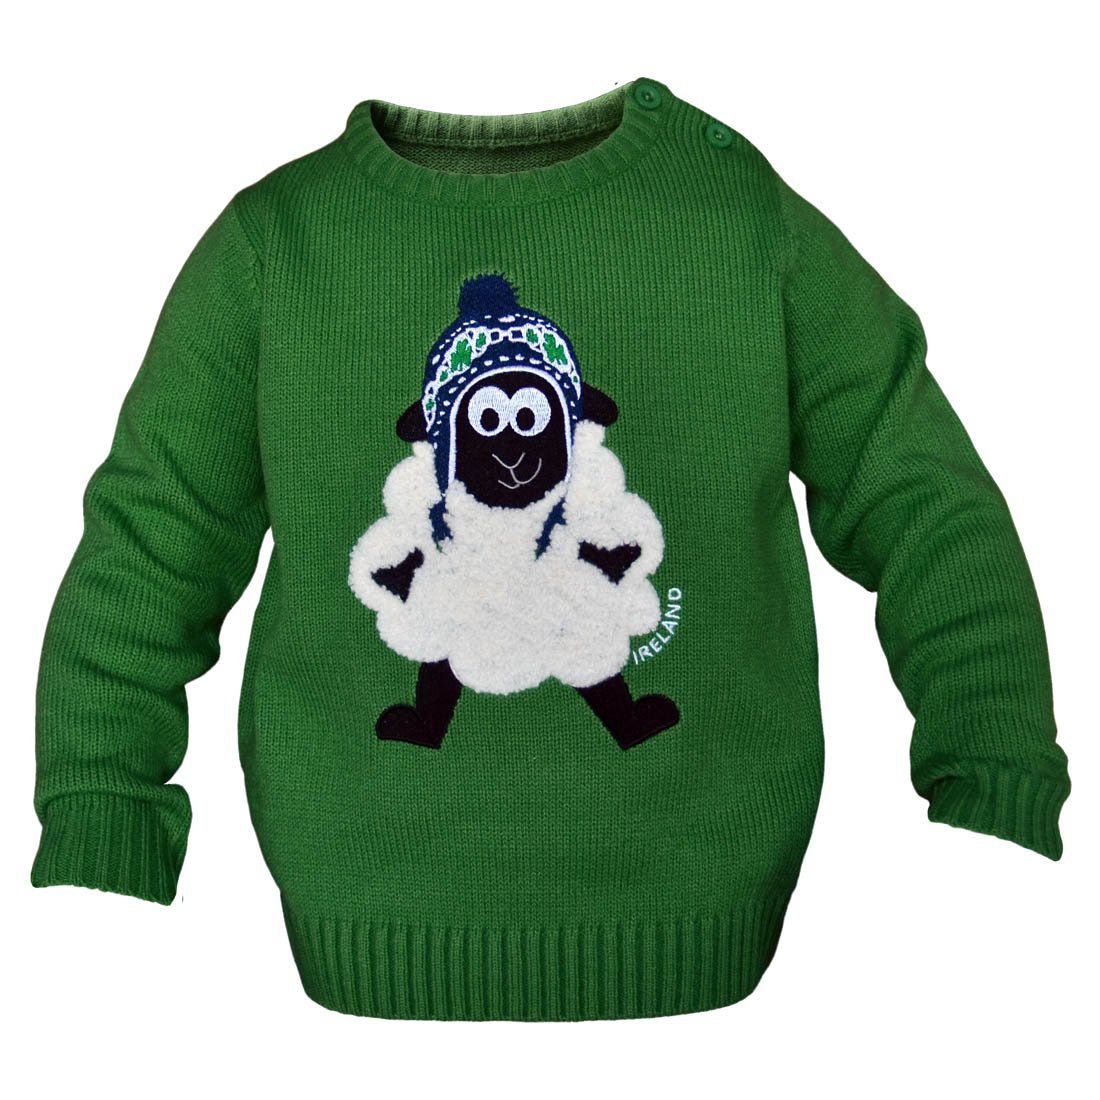 Carrolls Irish Gifts Round Neck Ireland Kids Sweater With Fluffy Sheep Emerald Green Colour Green 7-8 Years